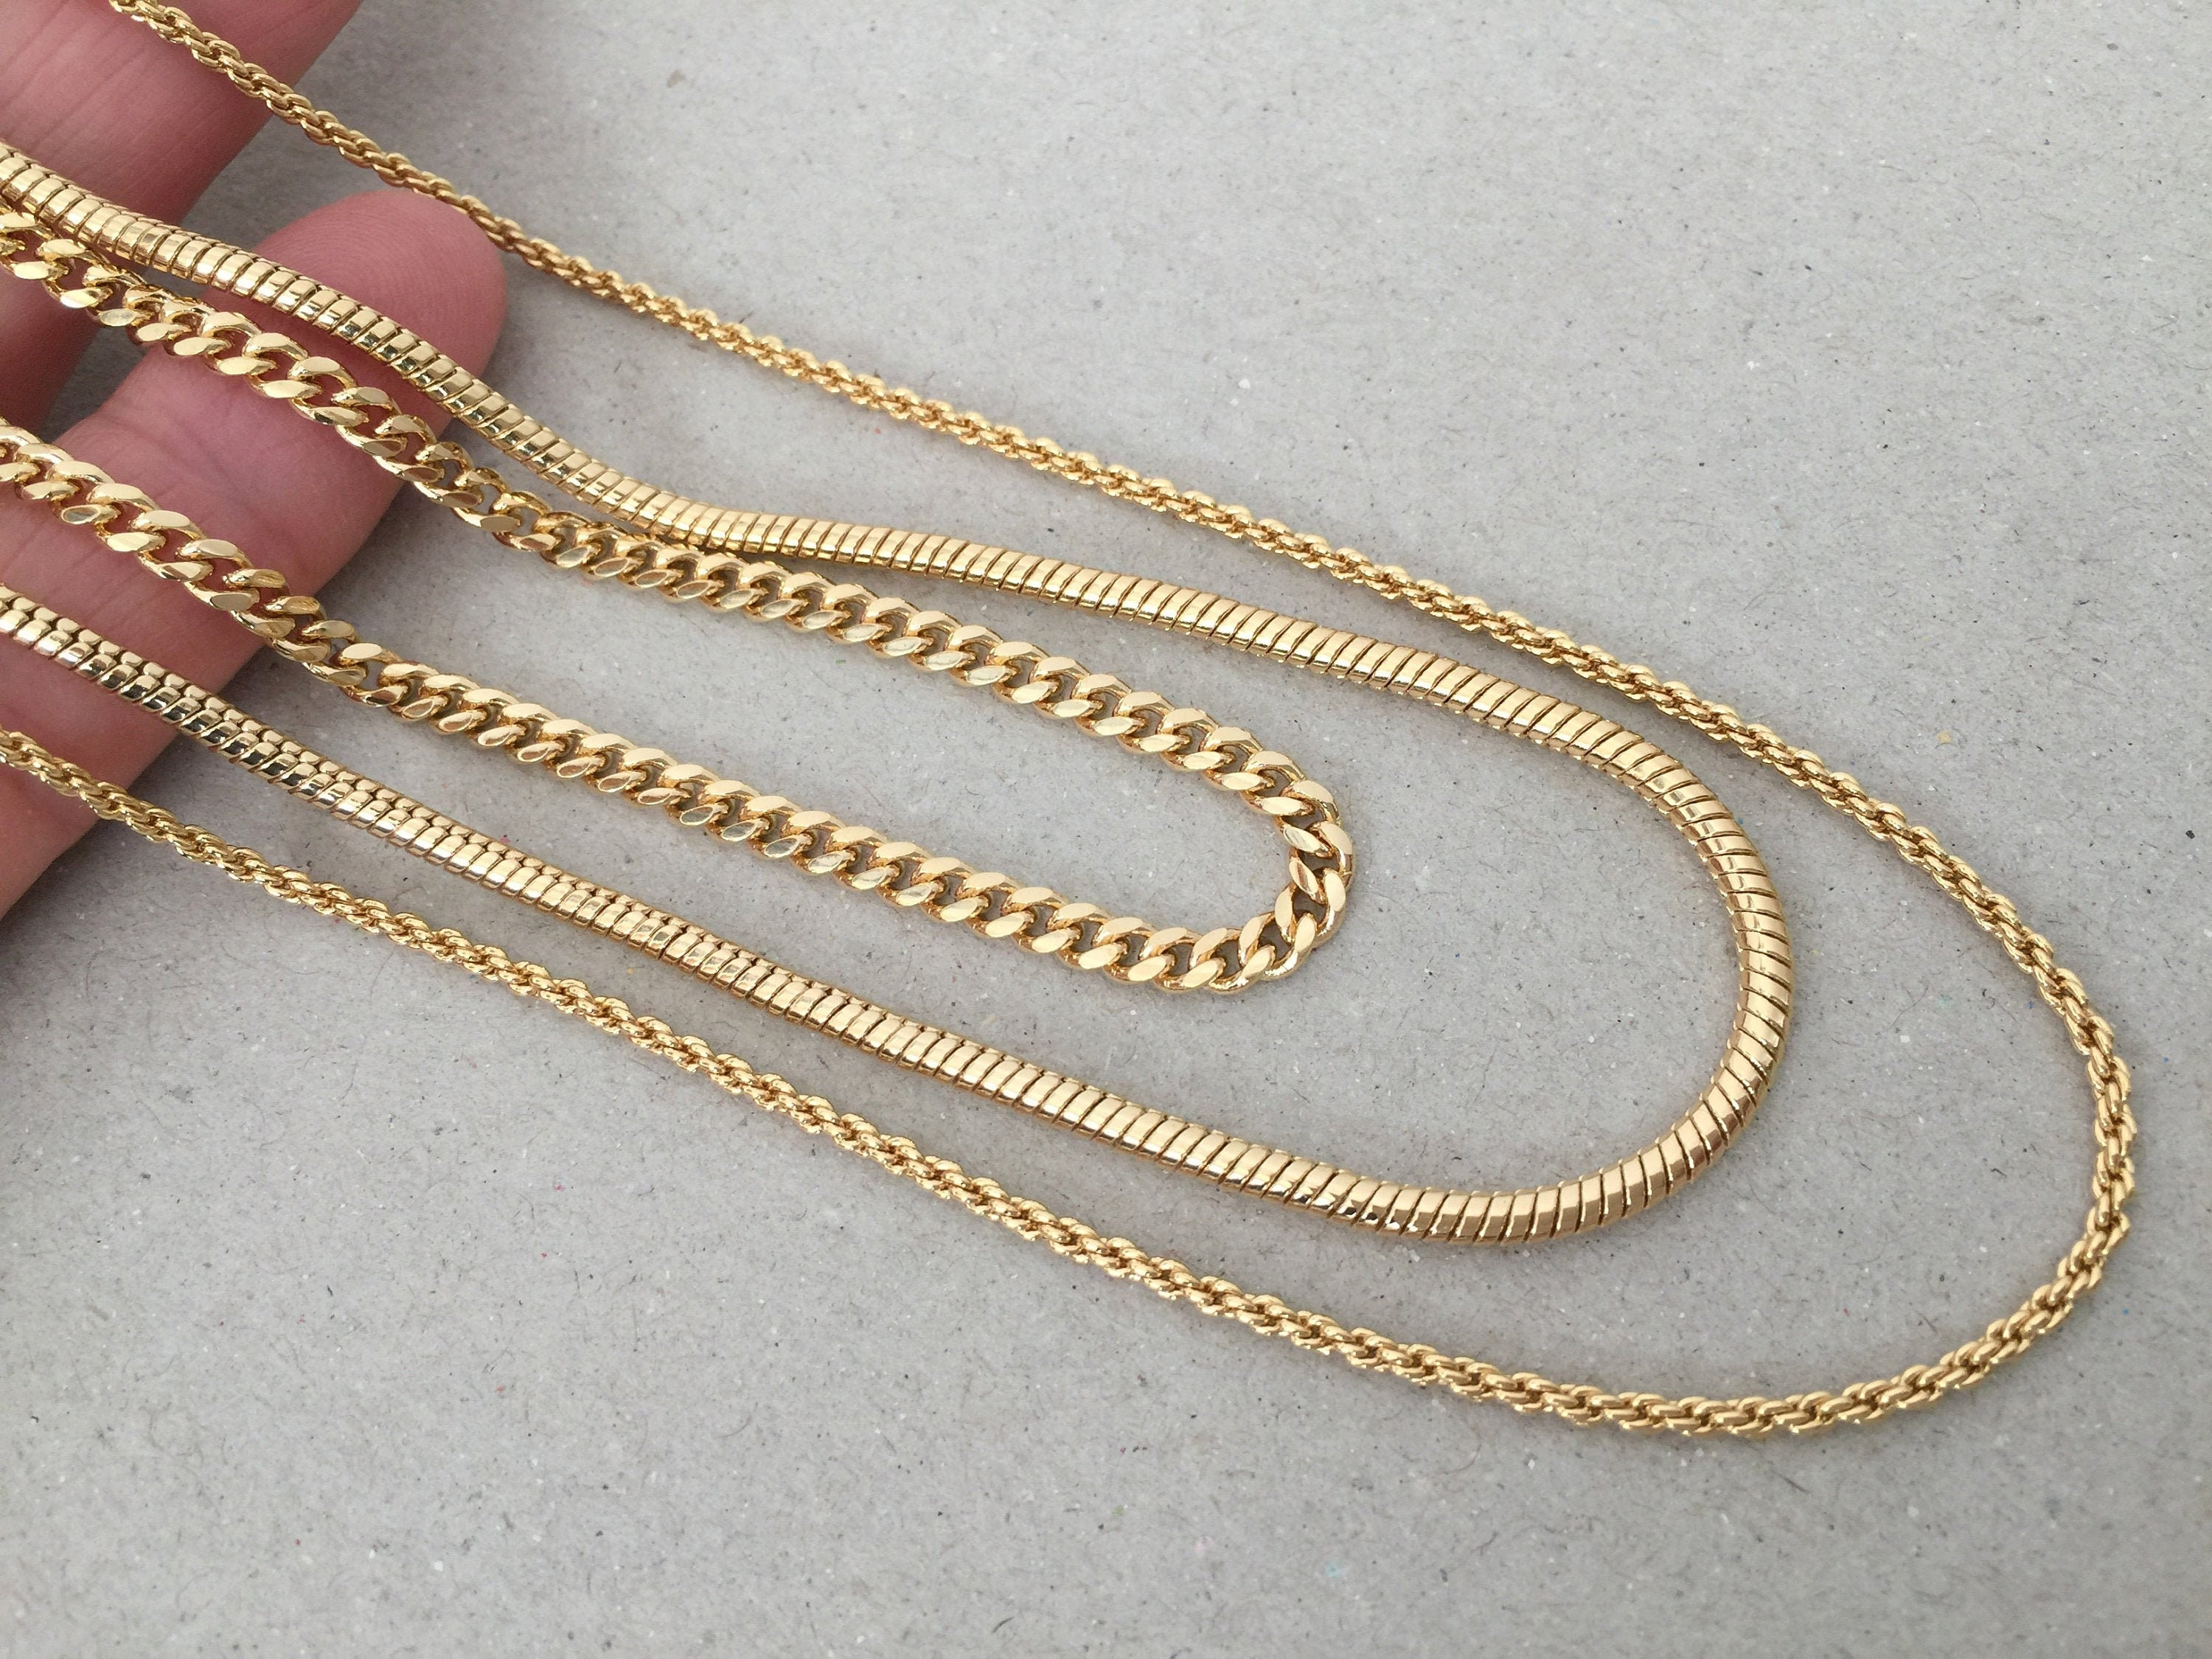 Gold Chain Necklace Thick Snake Chain Curb Link Chain Skinny Rope Chain 17 18 20 Gold Chain Necklace Set